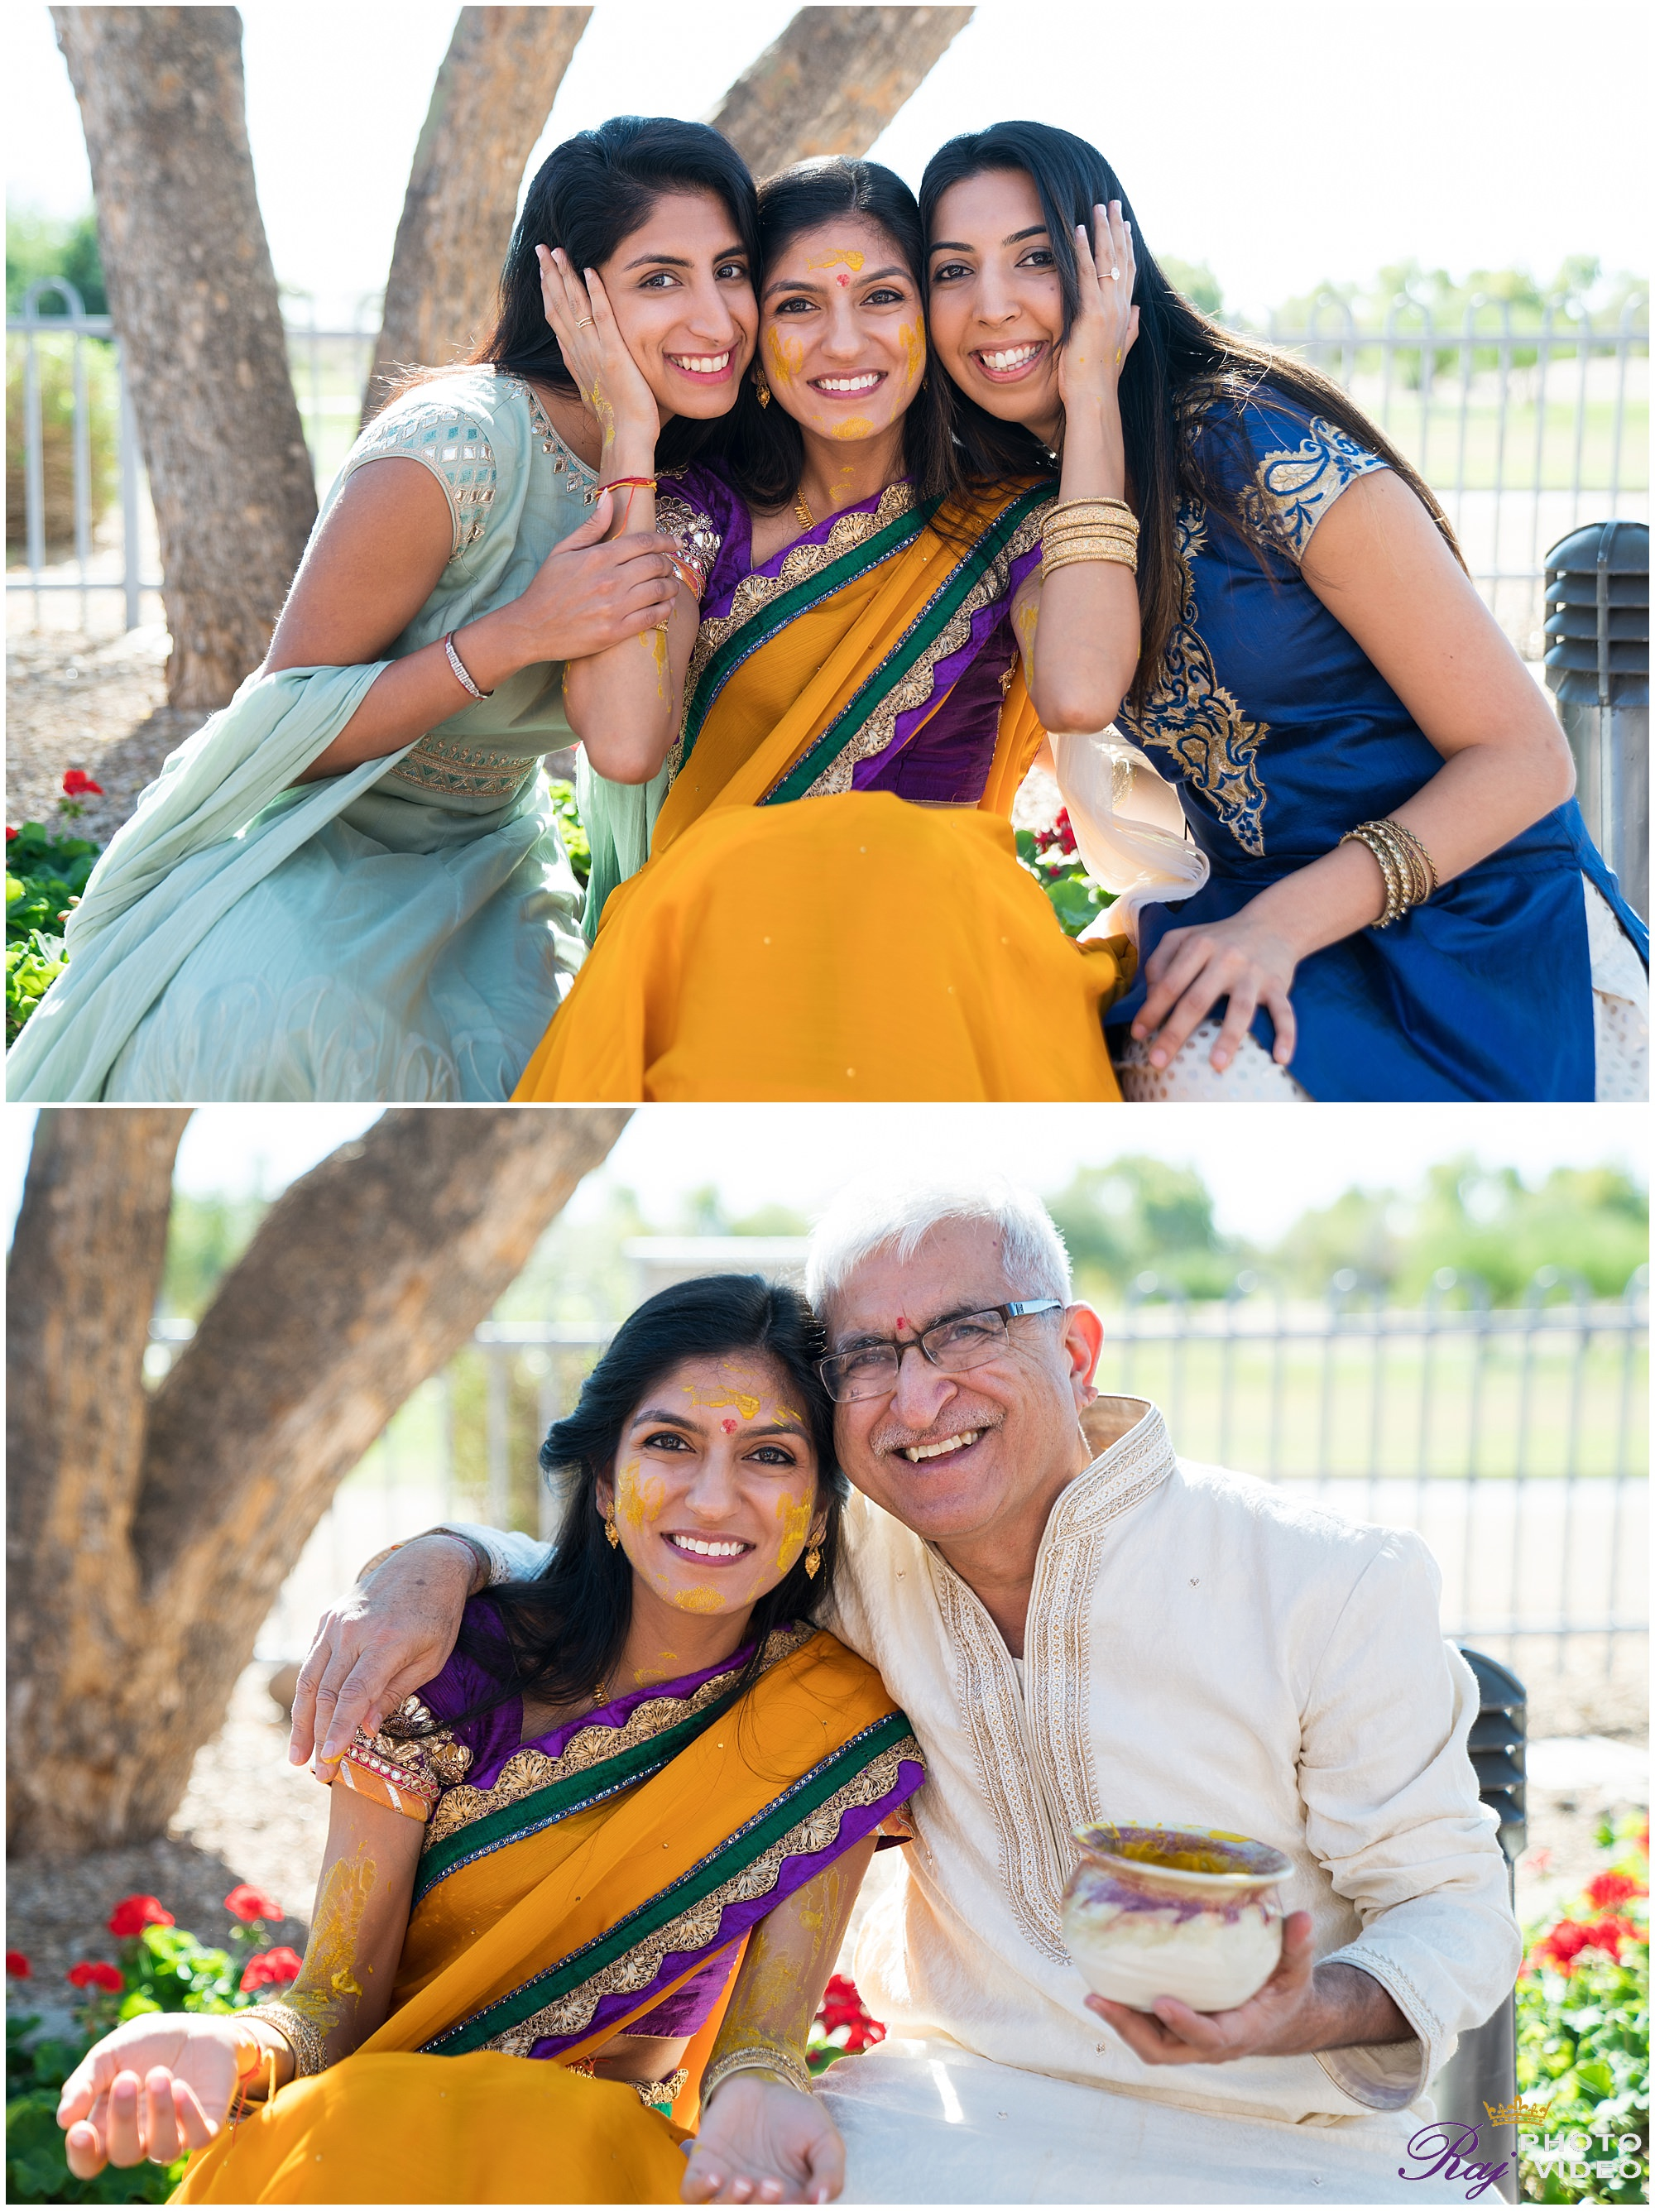 Scottsdale_Marriott_at_McDowell_Mountains_Arizona_Indian_Wedding_Sapna_Shyam-9.jpg